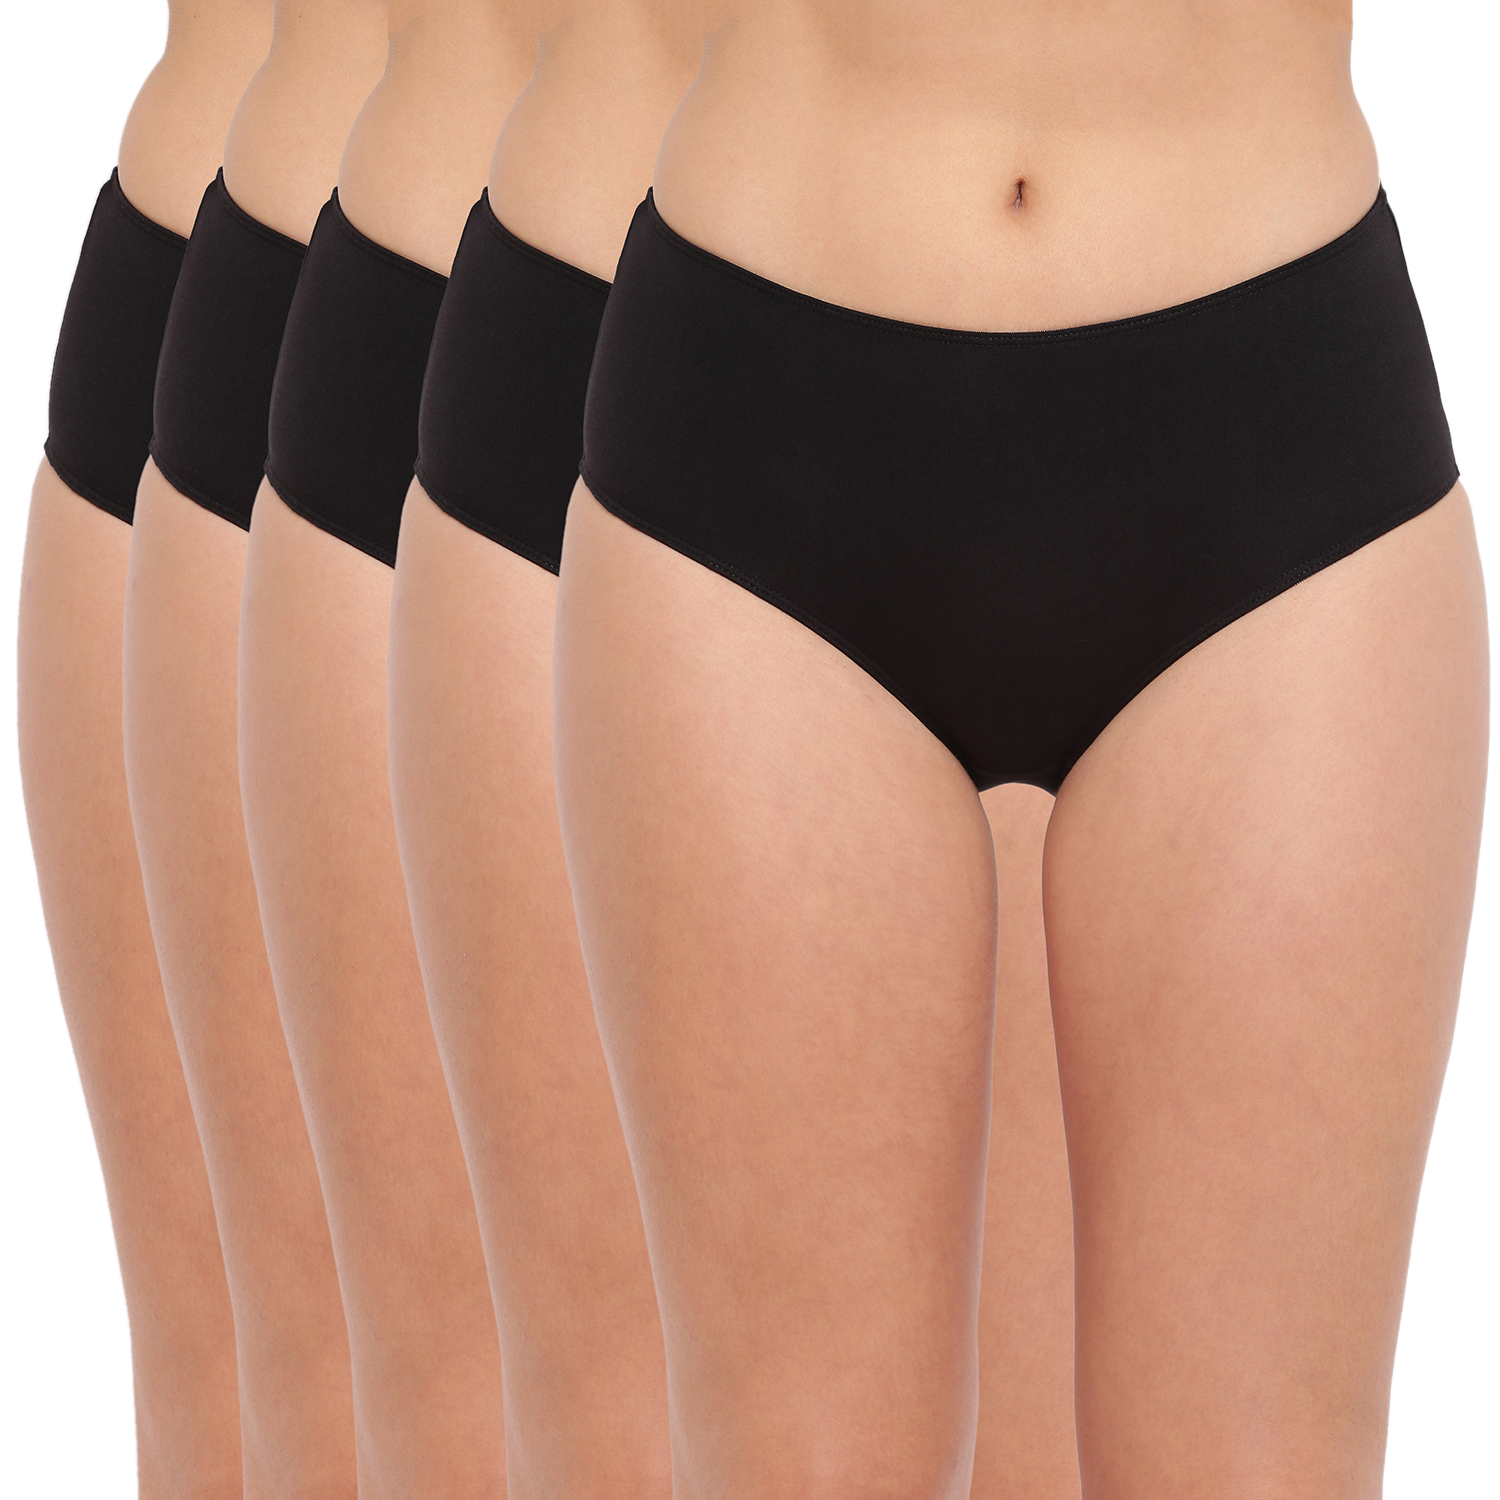 BASIICS by La Intimo   Tease 2 Please Hipster/ Full Brief Black (Pack of 5)